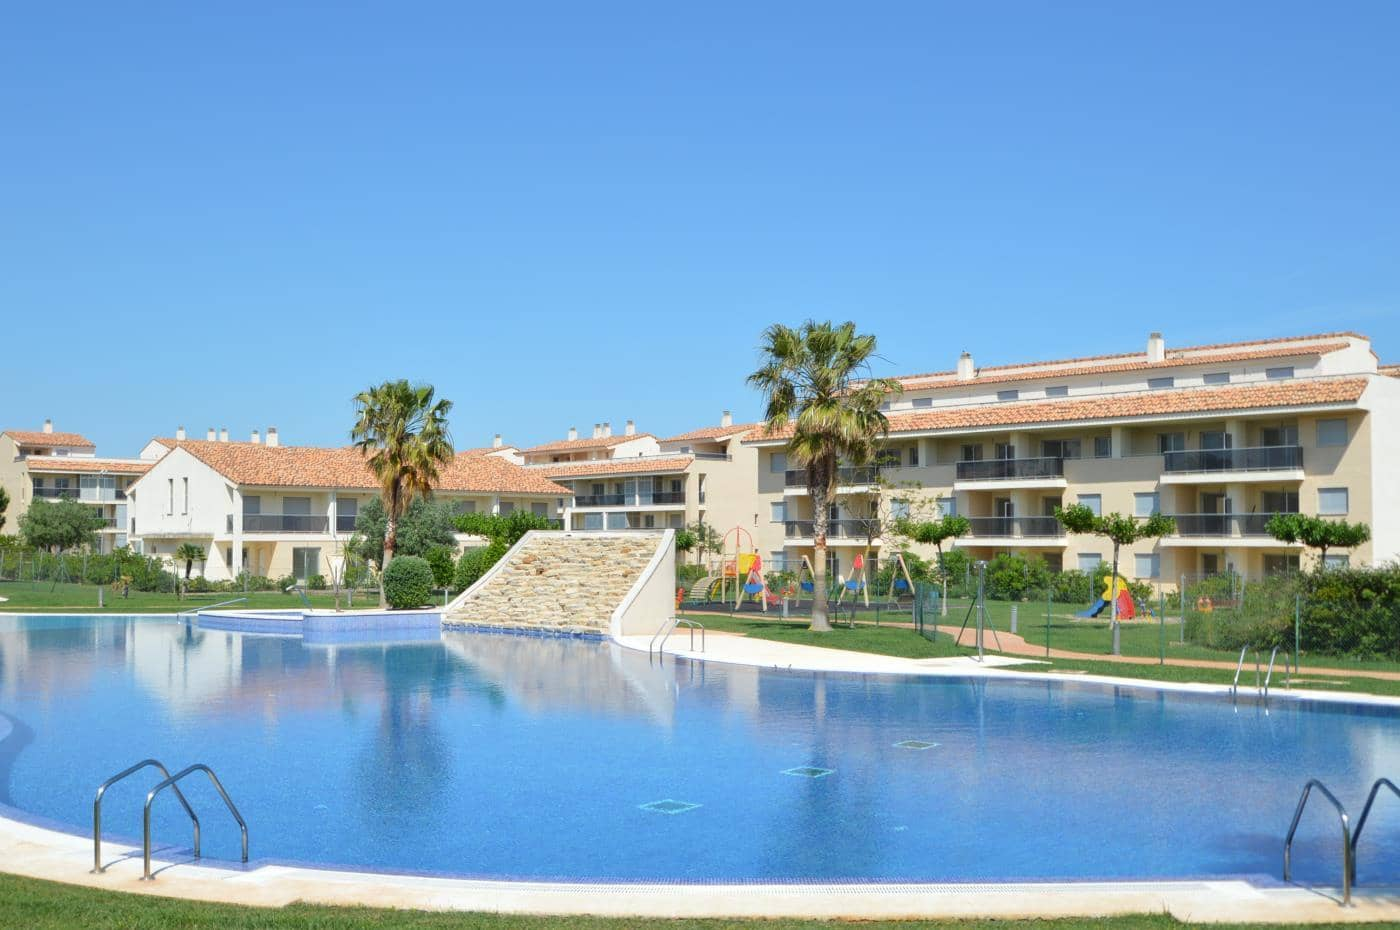 2 bedroom Apartment for sale in Sant Jordi with pool - € 80,000 (Ref: 4915020)